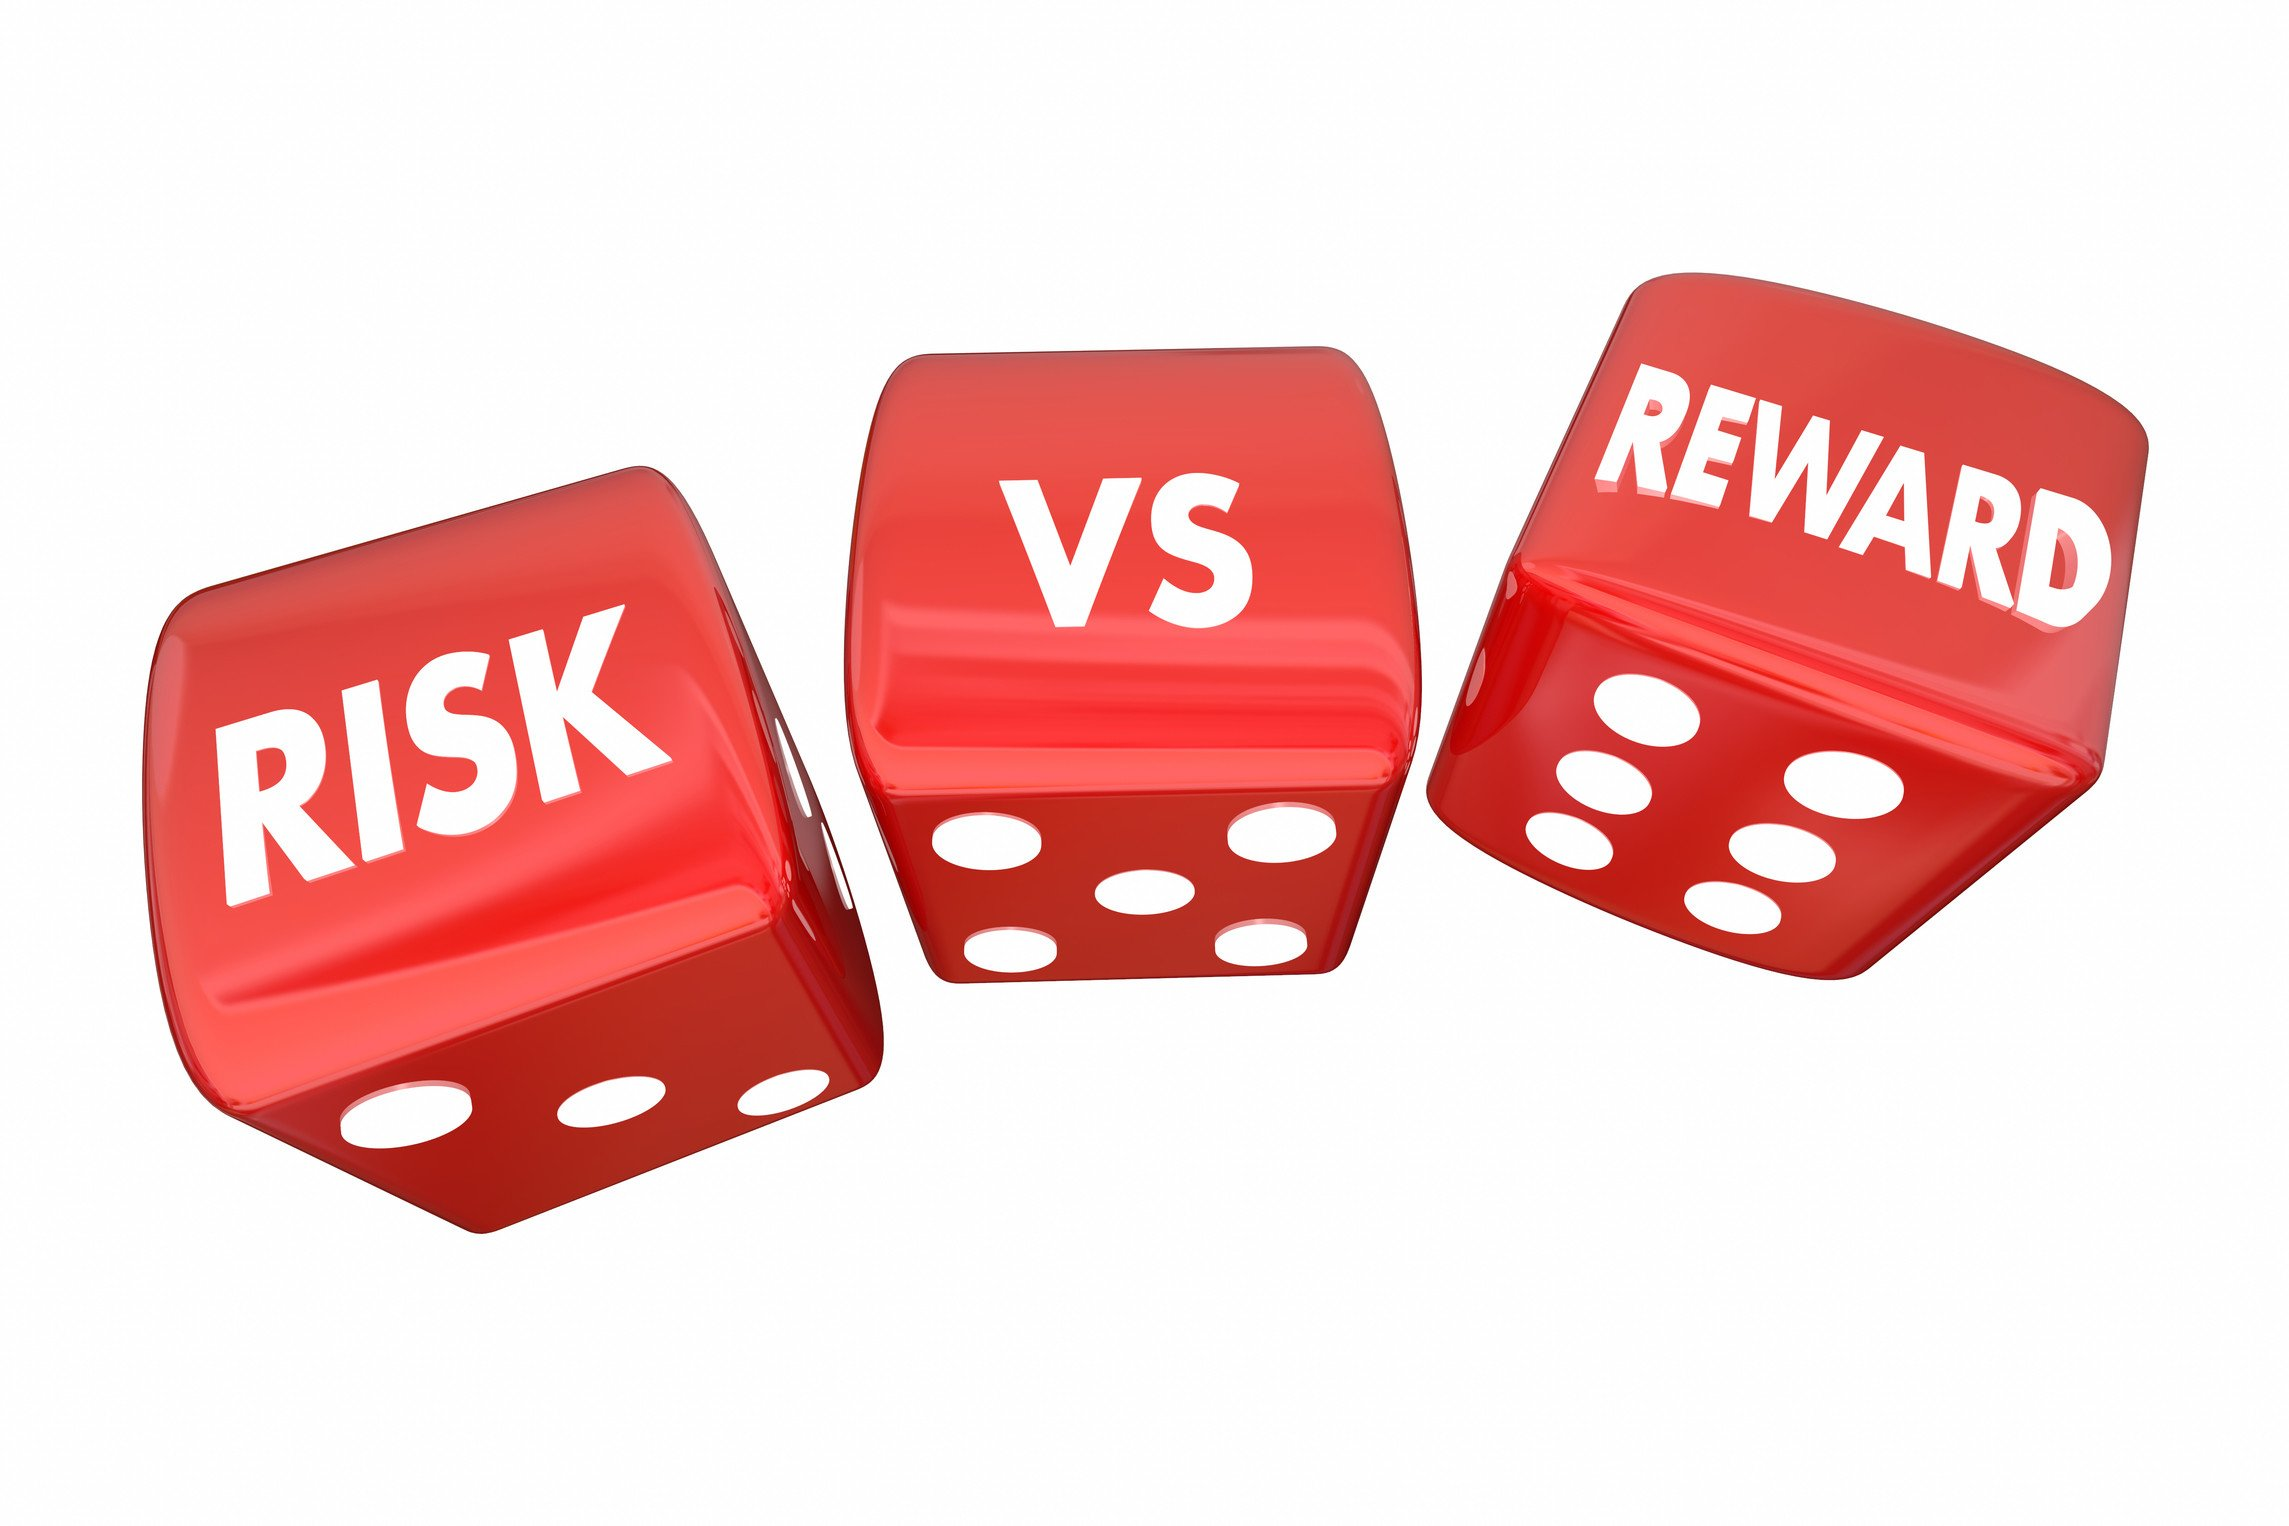 Understanding Risk to Reward Ratios